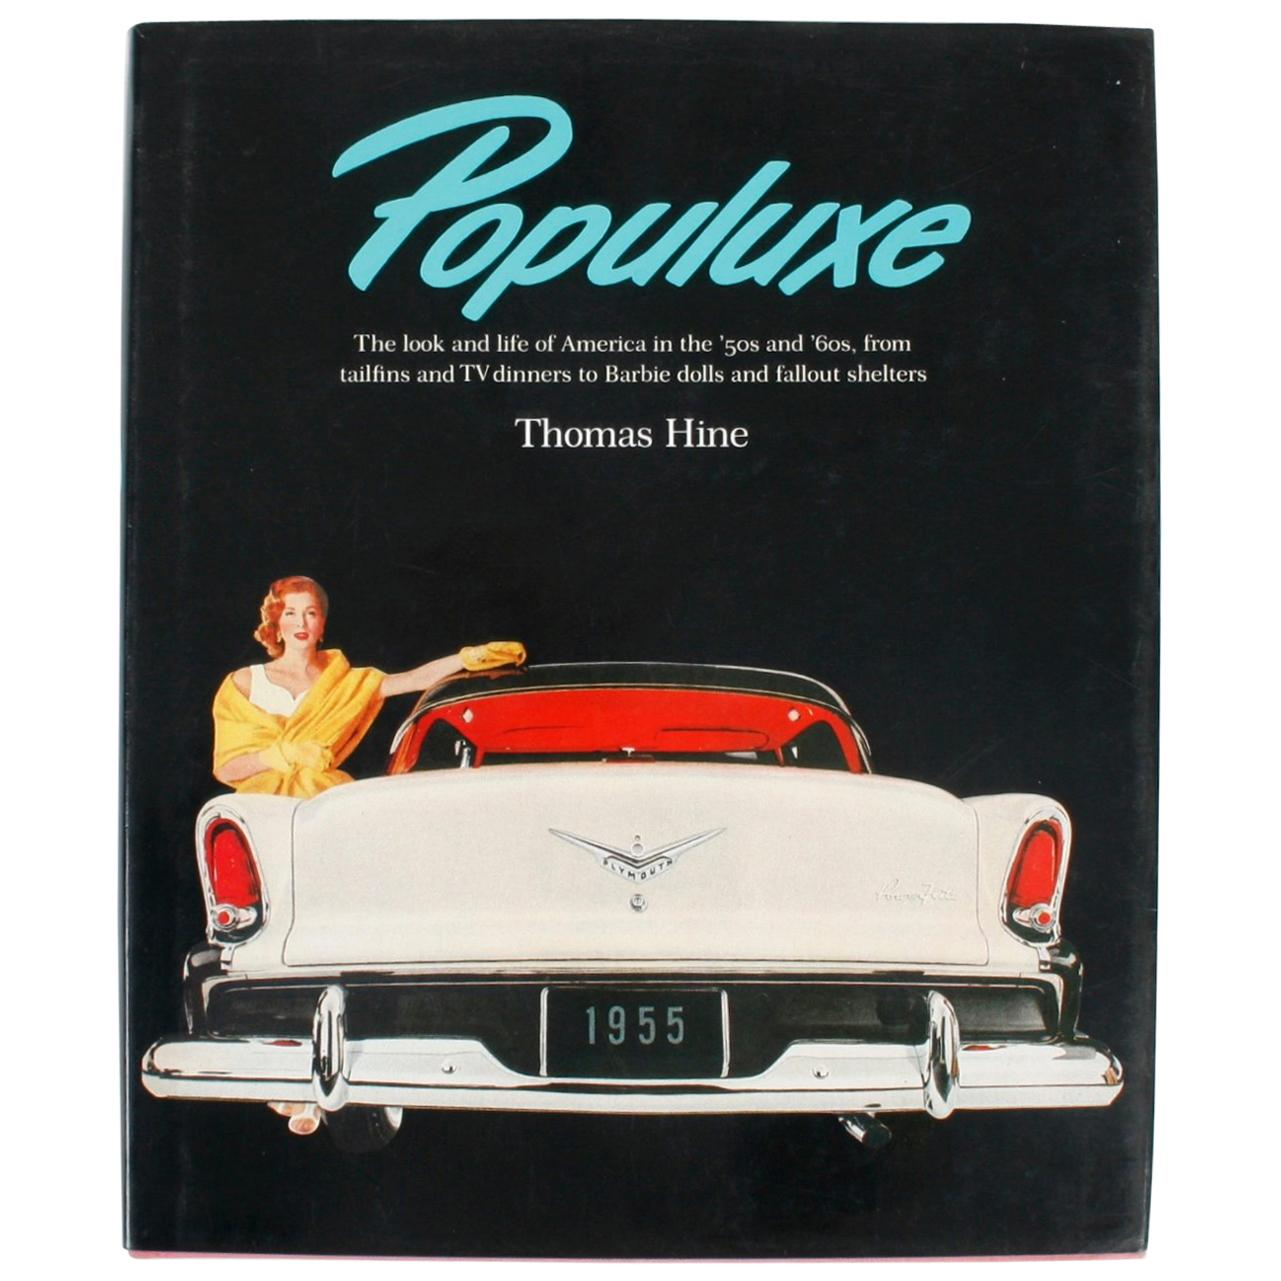 """Populuxe"" Book by Thomas Hine, First Edition"